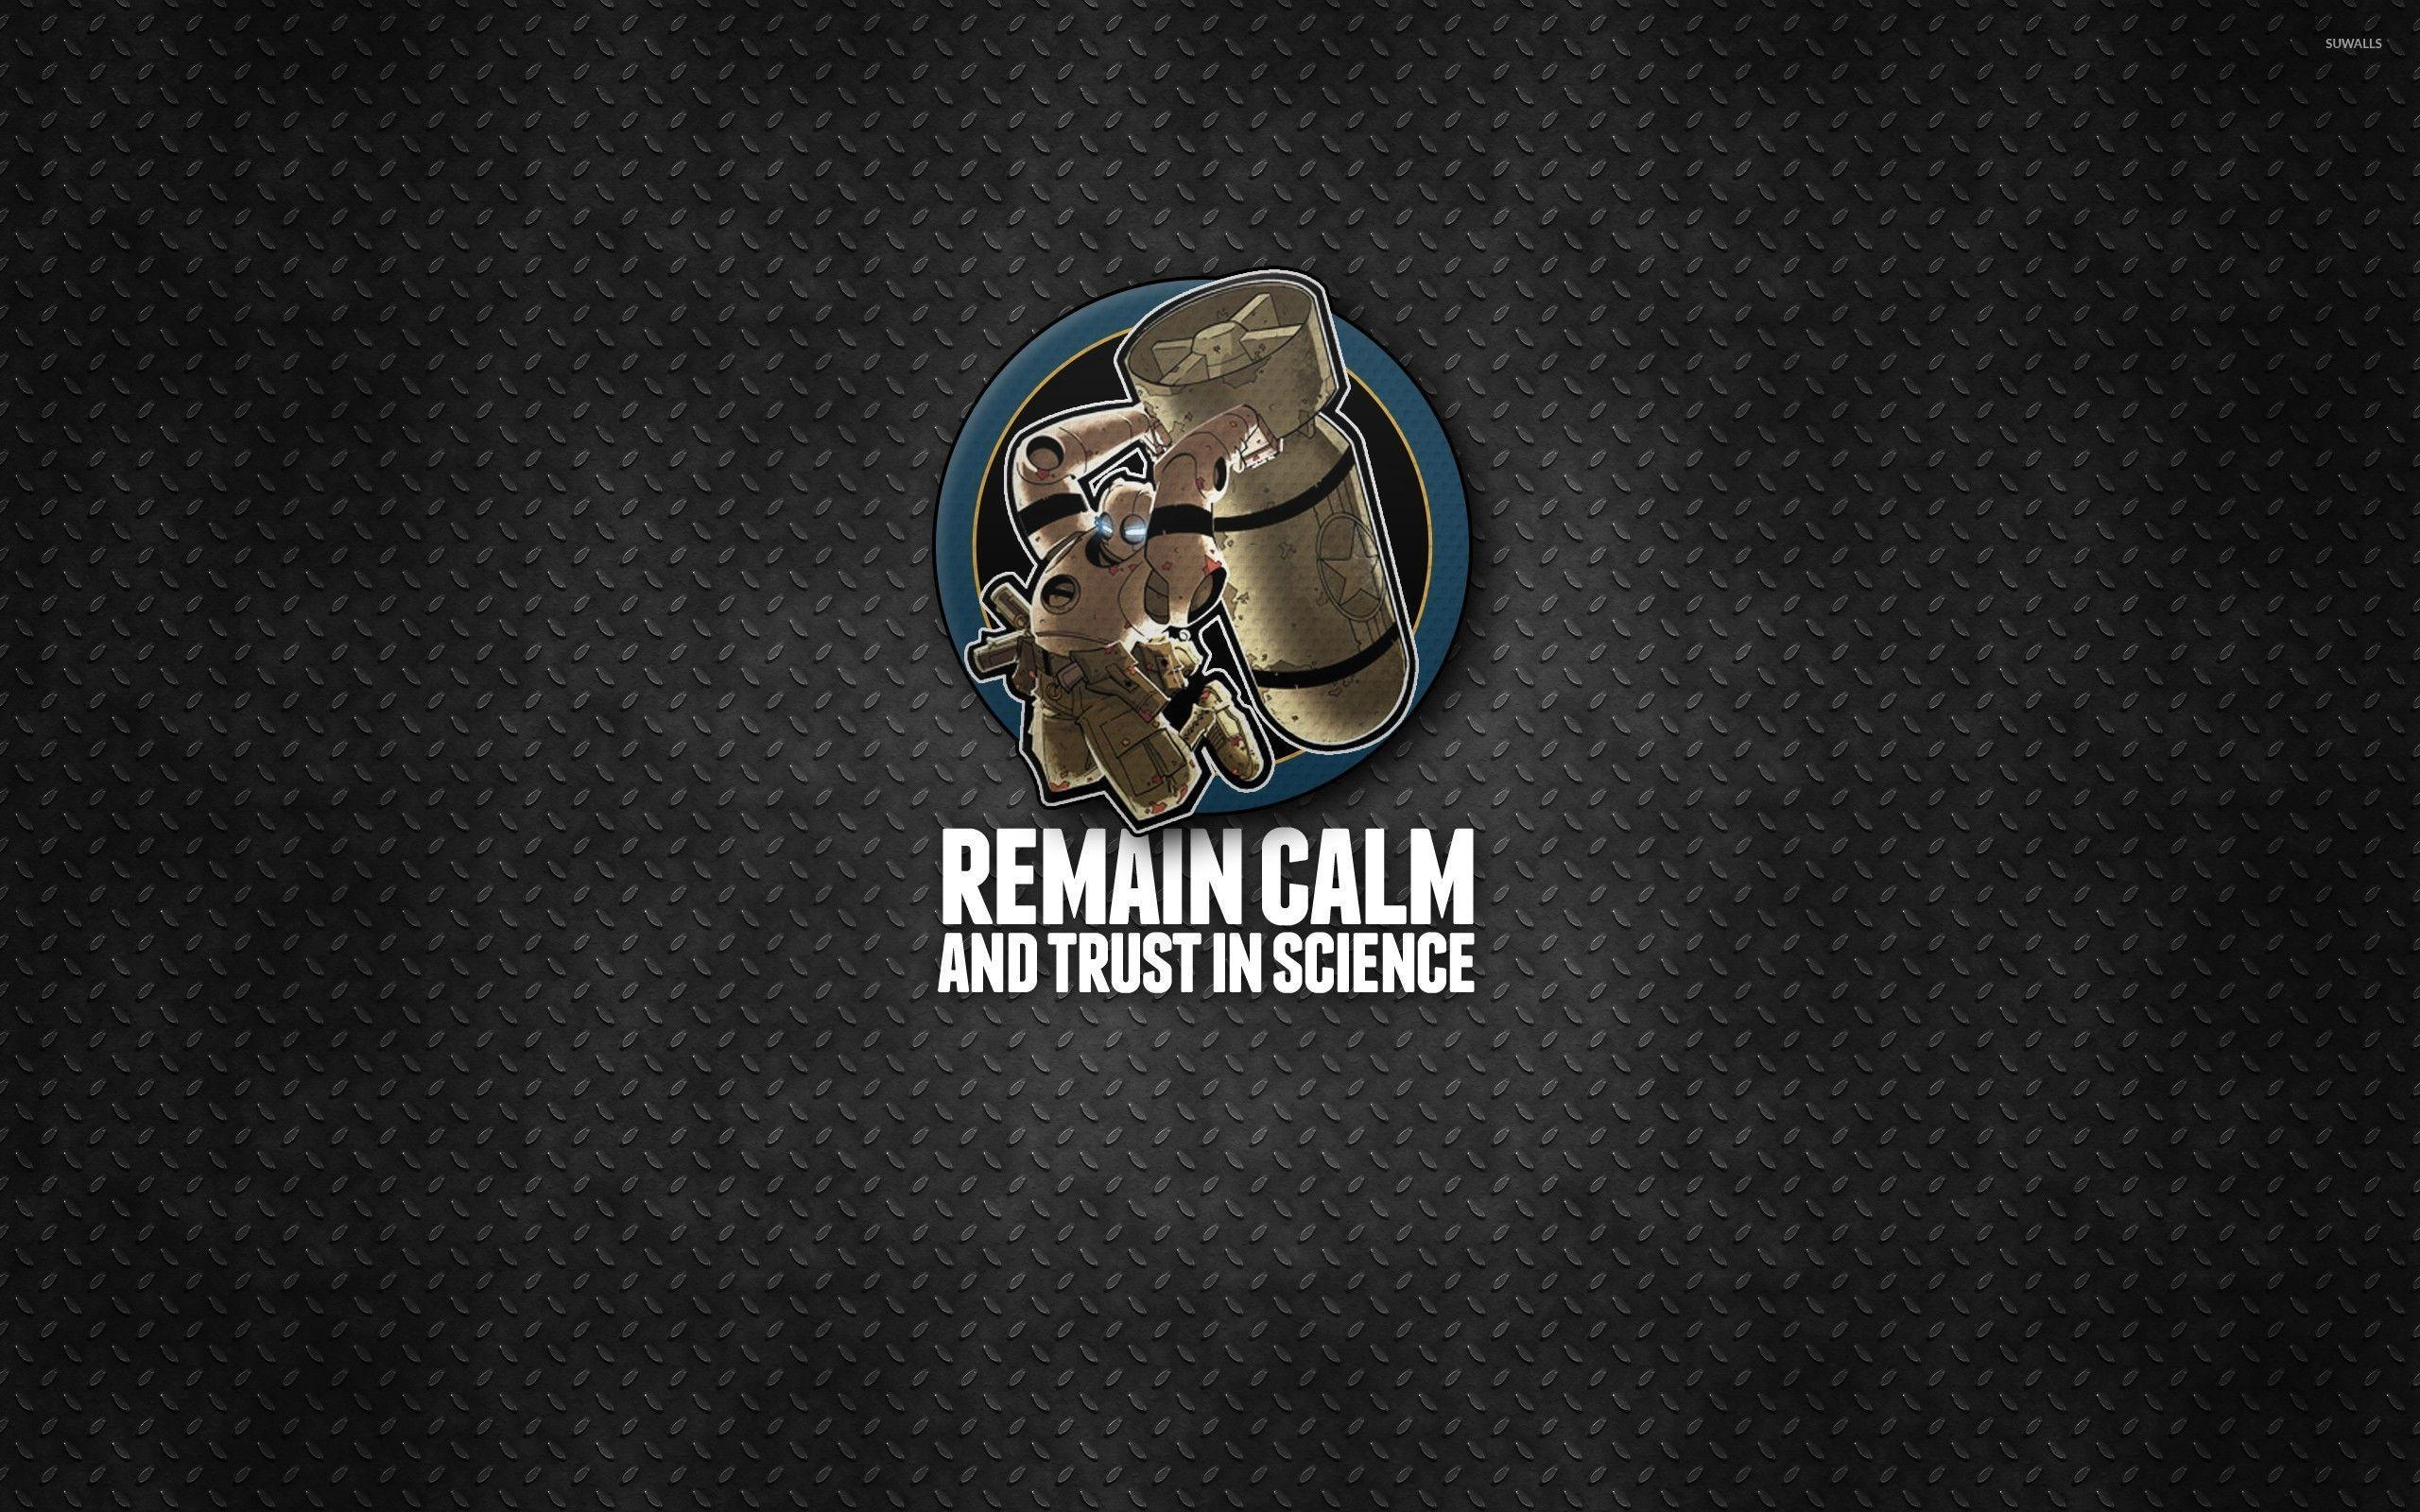 Remain calm and trust in science wallpapers